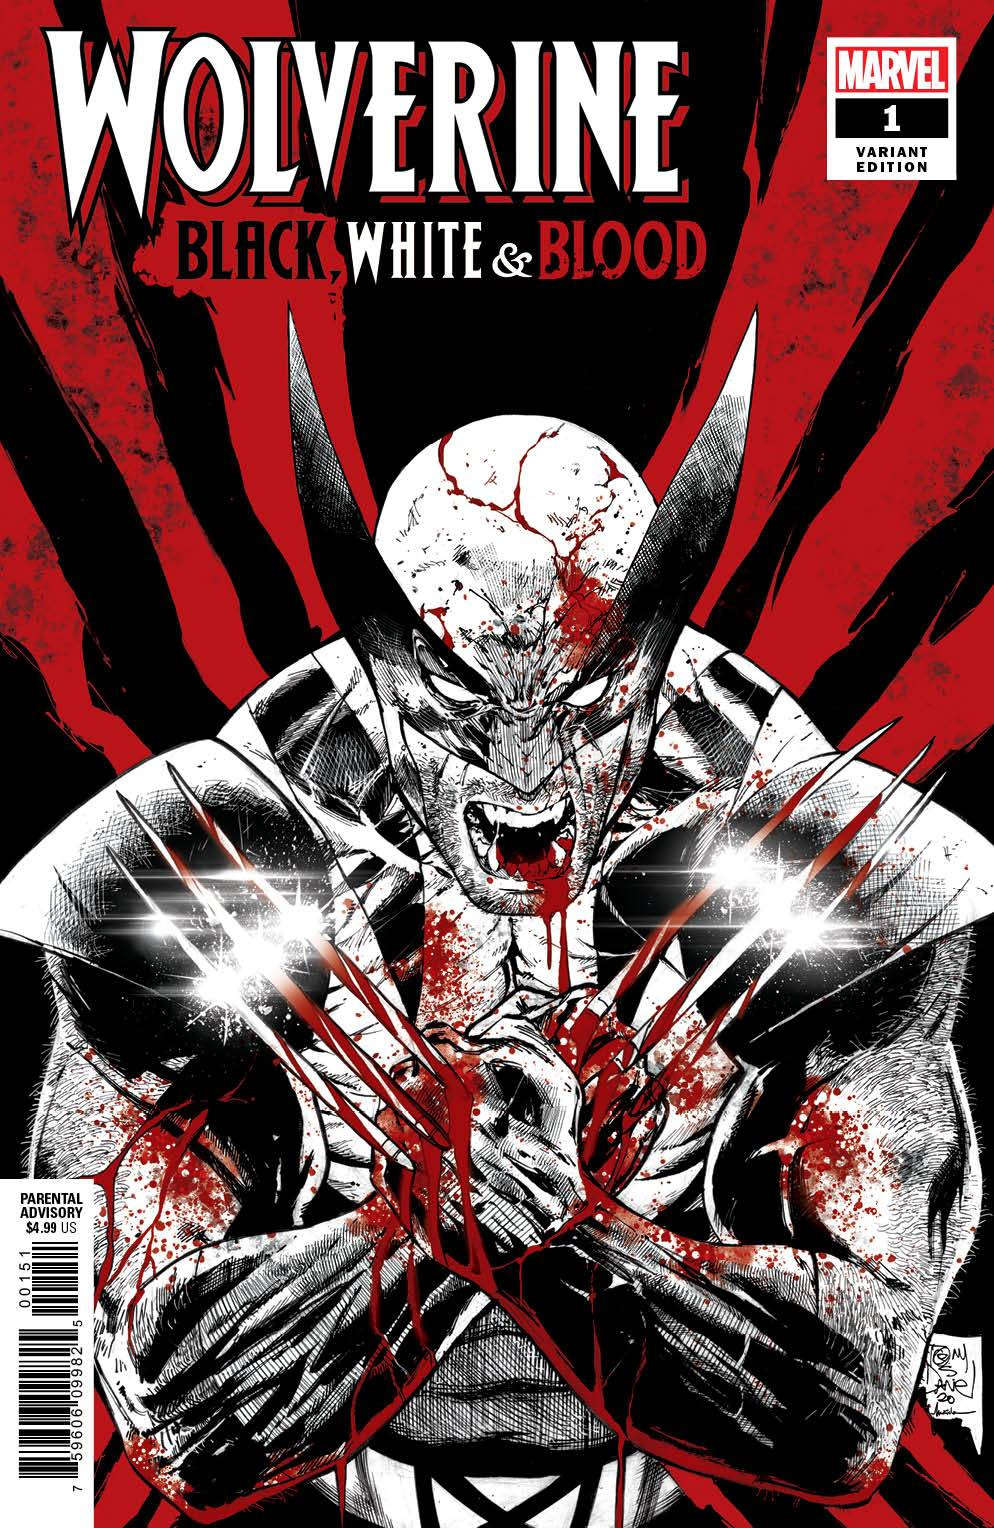 WOLVERINE BLACK WHITE BLOOD #1 DANIEL 1:25 VARIANT